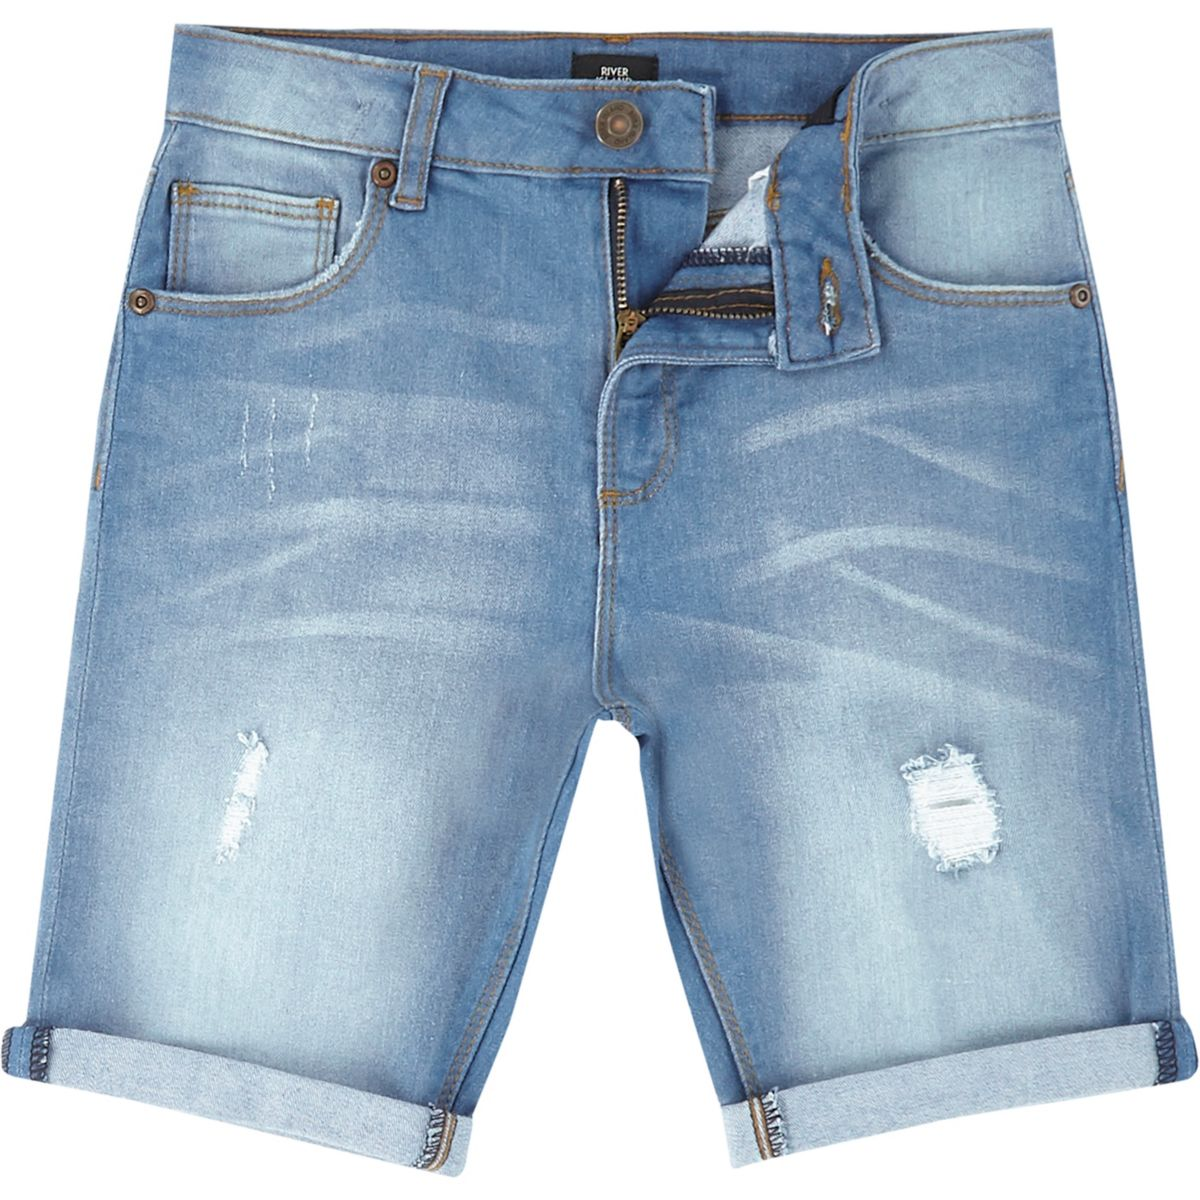 Find great deals on eBay for boys denim shorts. Shop with confidence.